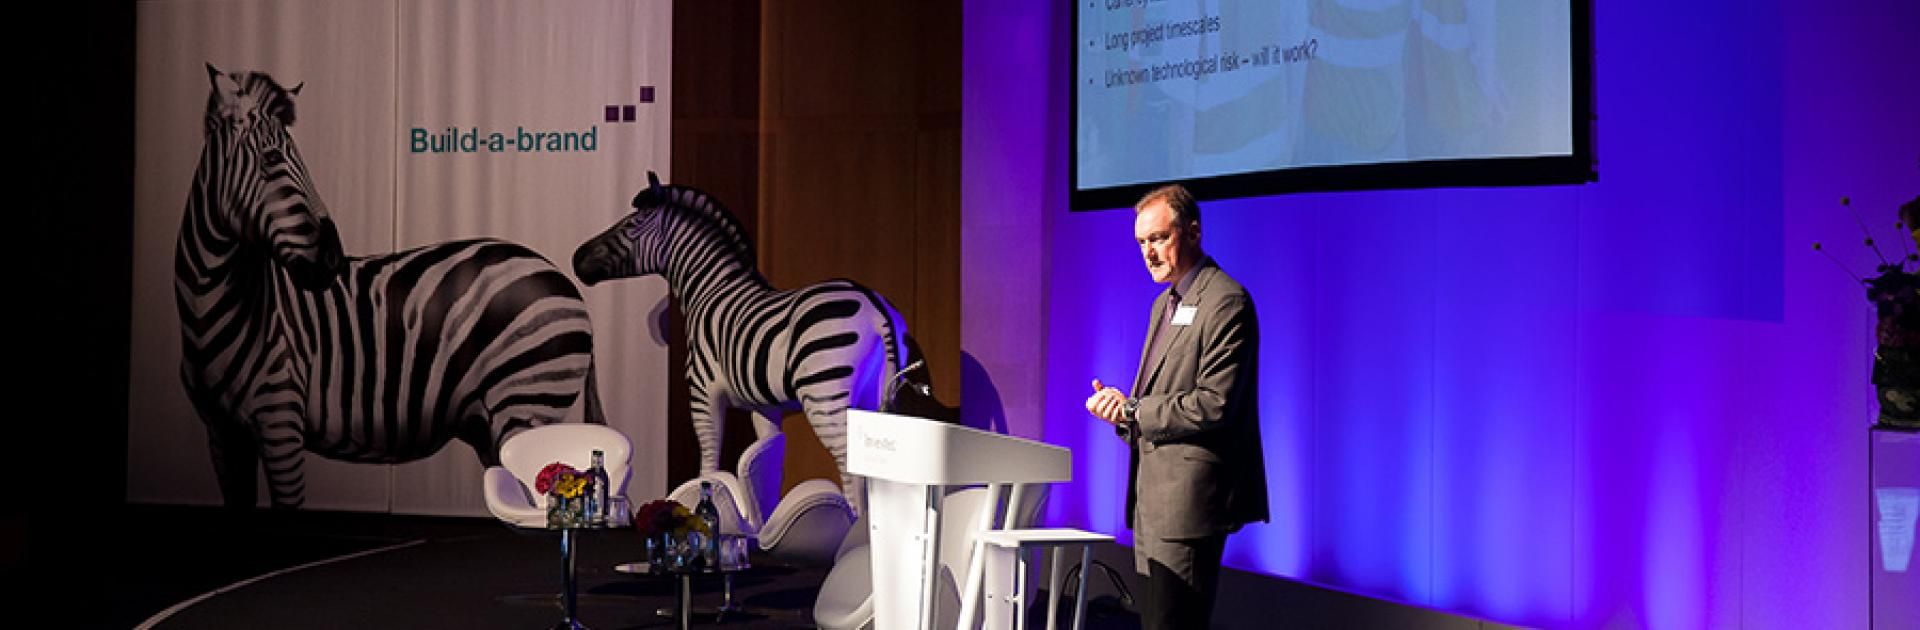 Nick Flower Investec Conference 2